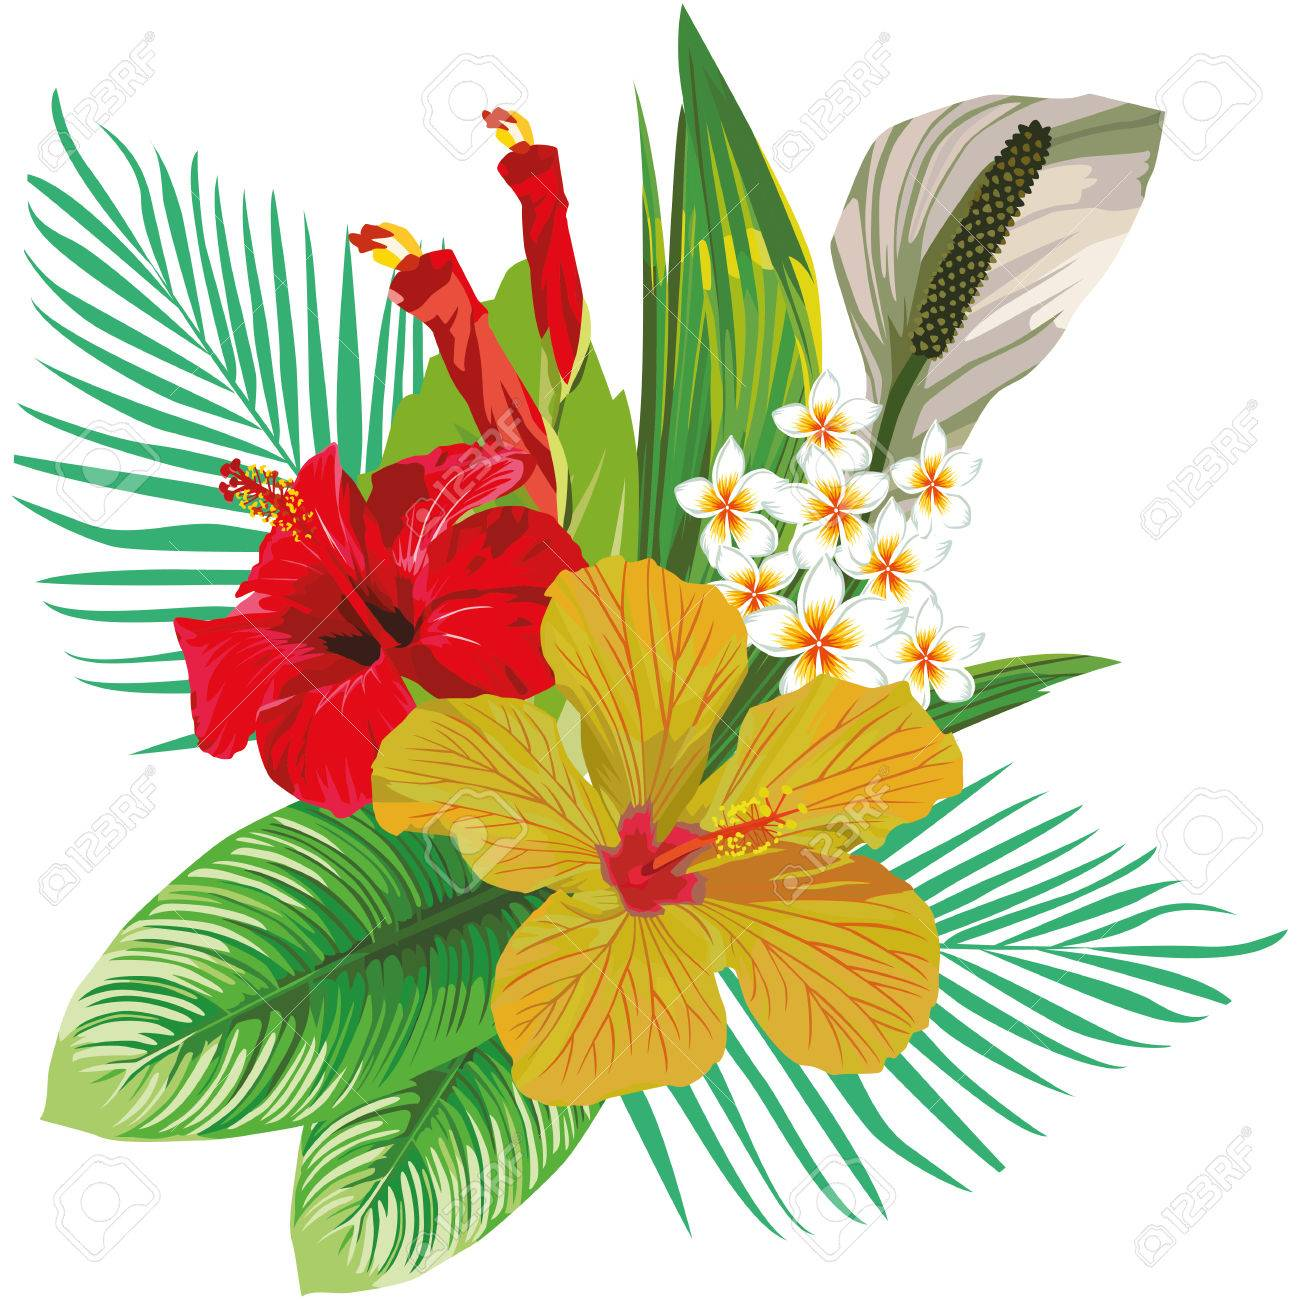 Floral Composition Of Hibiscus Flowers And Plumeria With Tropical Leaves Beach Wallpapers On White Background